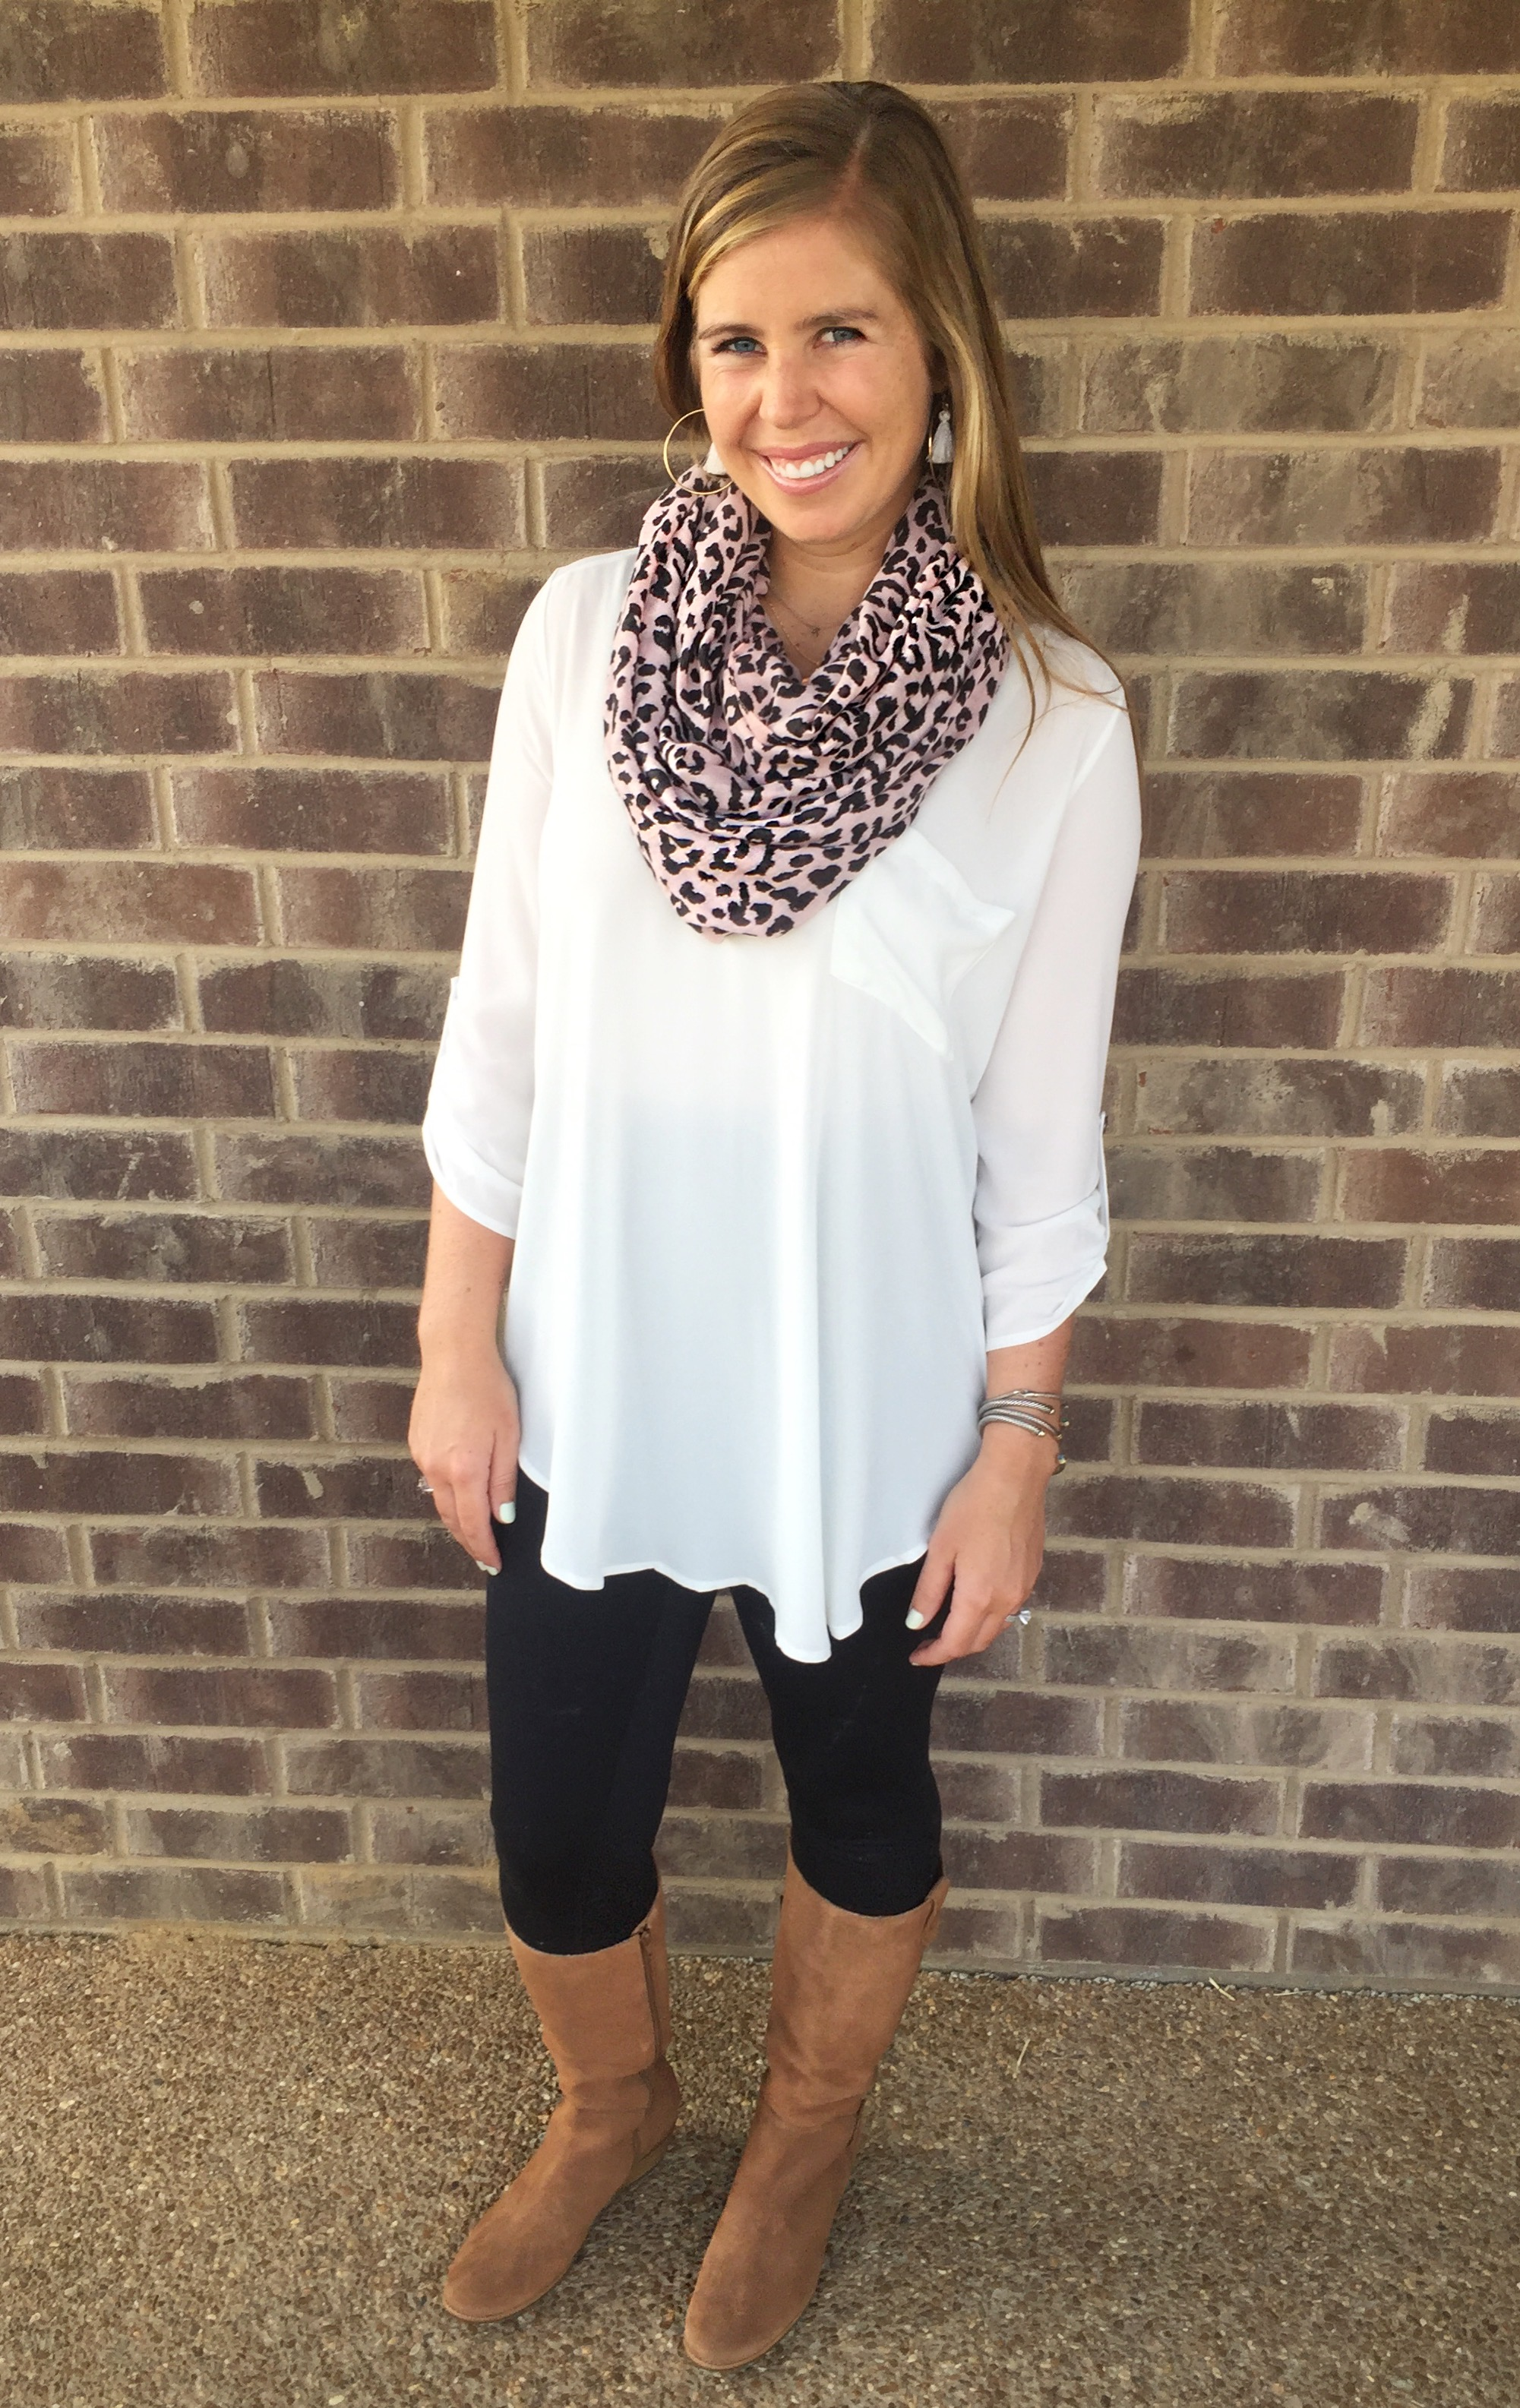 Outfit details:   Tunic  //  Leggings  //  Boots  //  Earrings  //  Scarf